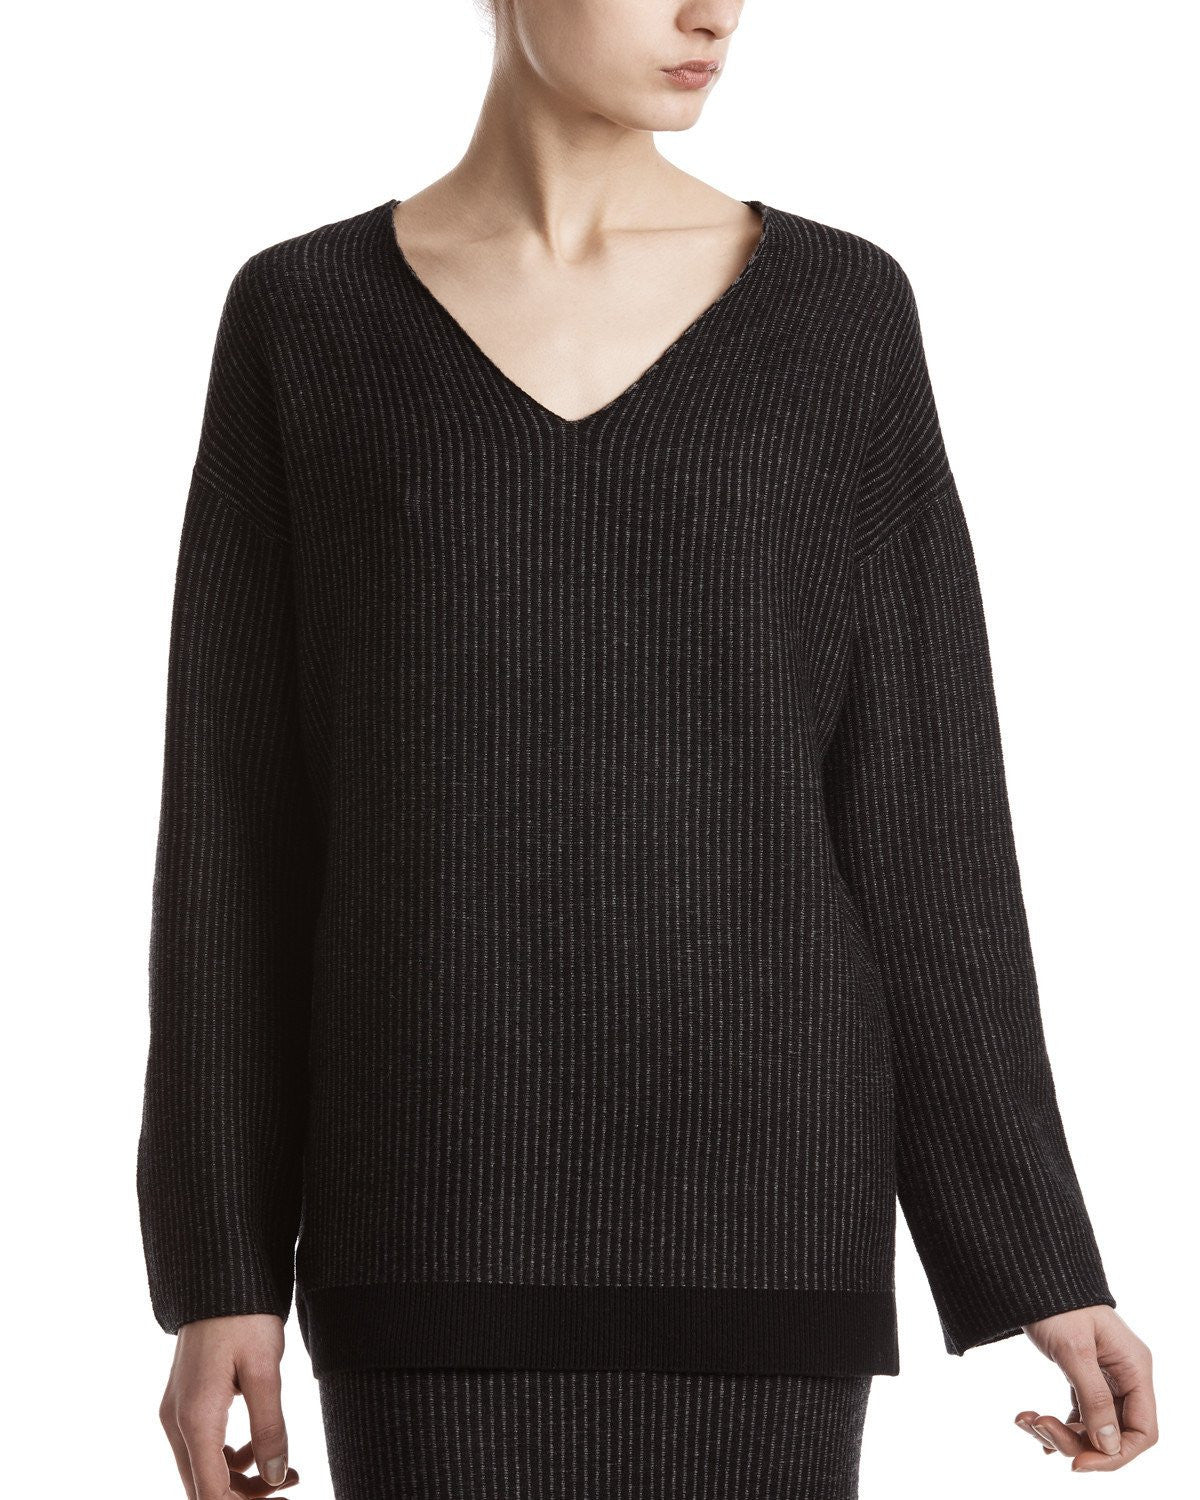 ATM Plated V-Neck Sweater